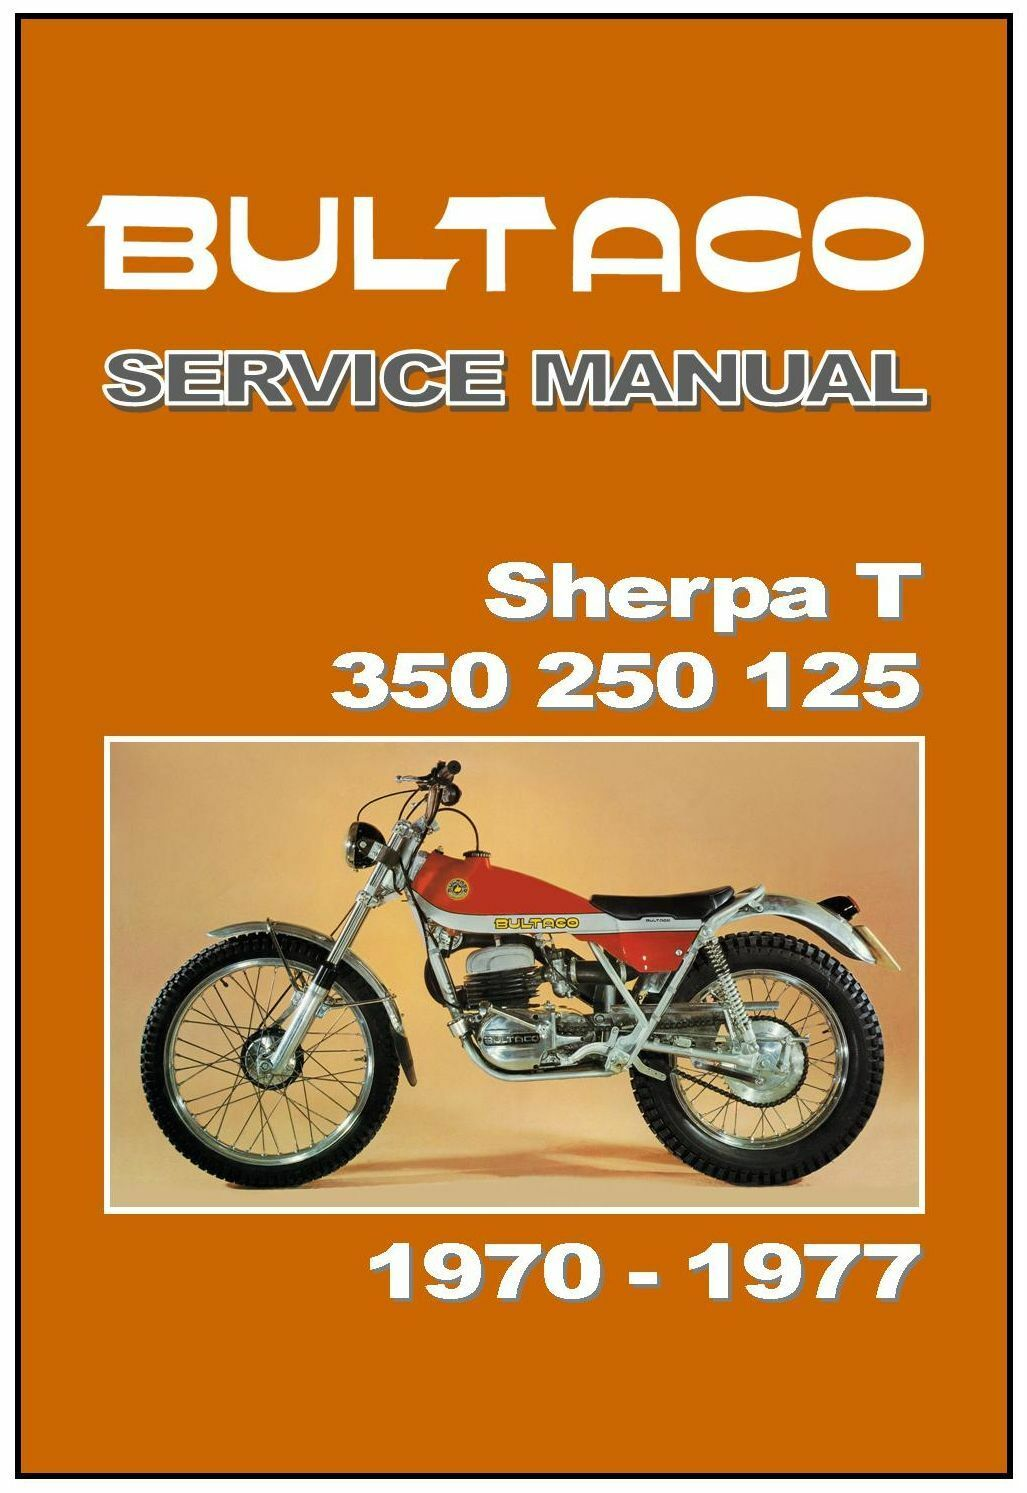 BULTACO Workshop Manual Sherpa T 350 250 1970 1971 1972 1973 1974 1975 1976  1977 1 of 1Only 2 available ...